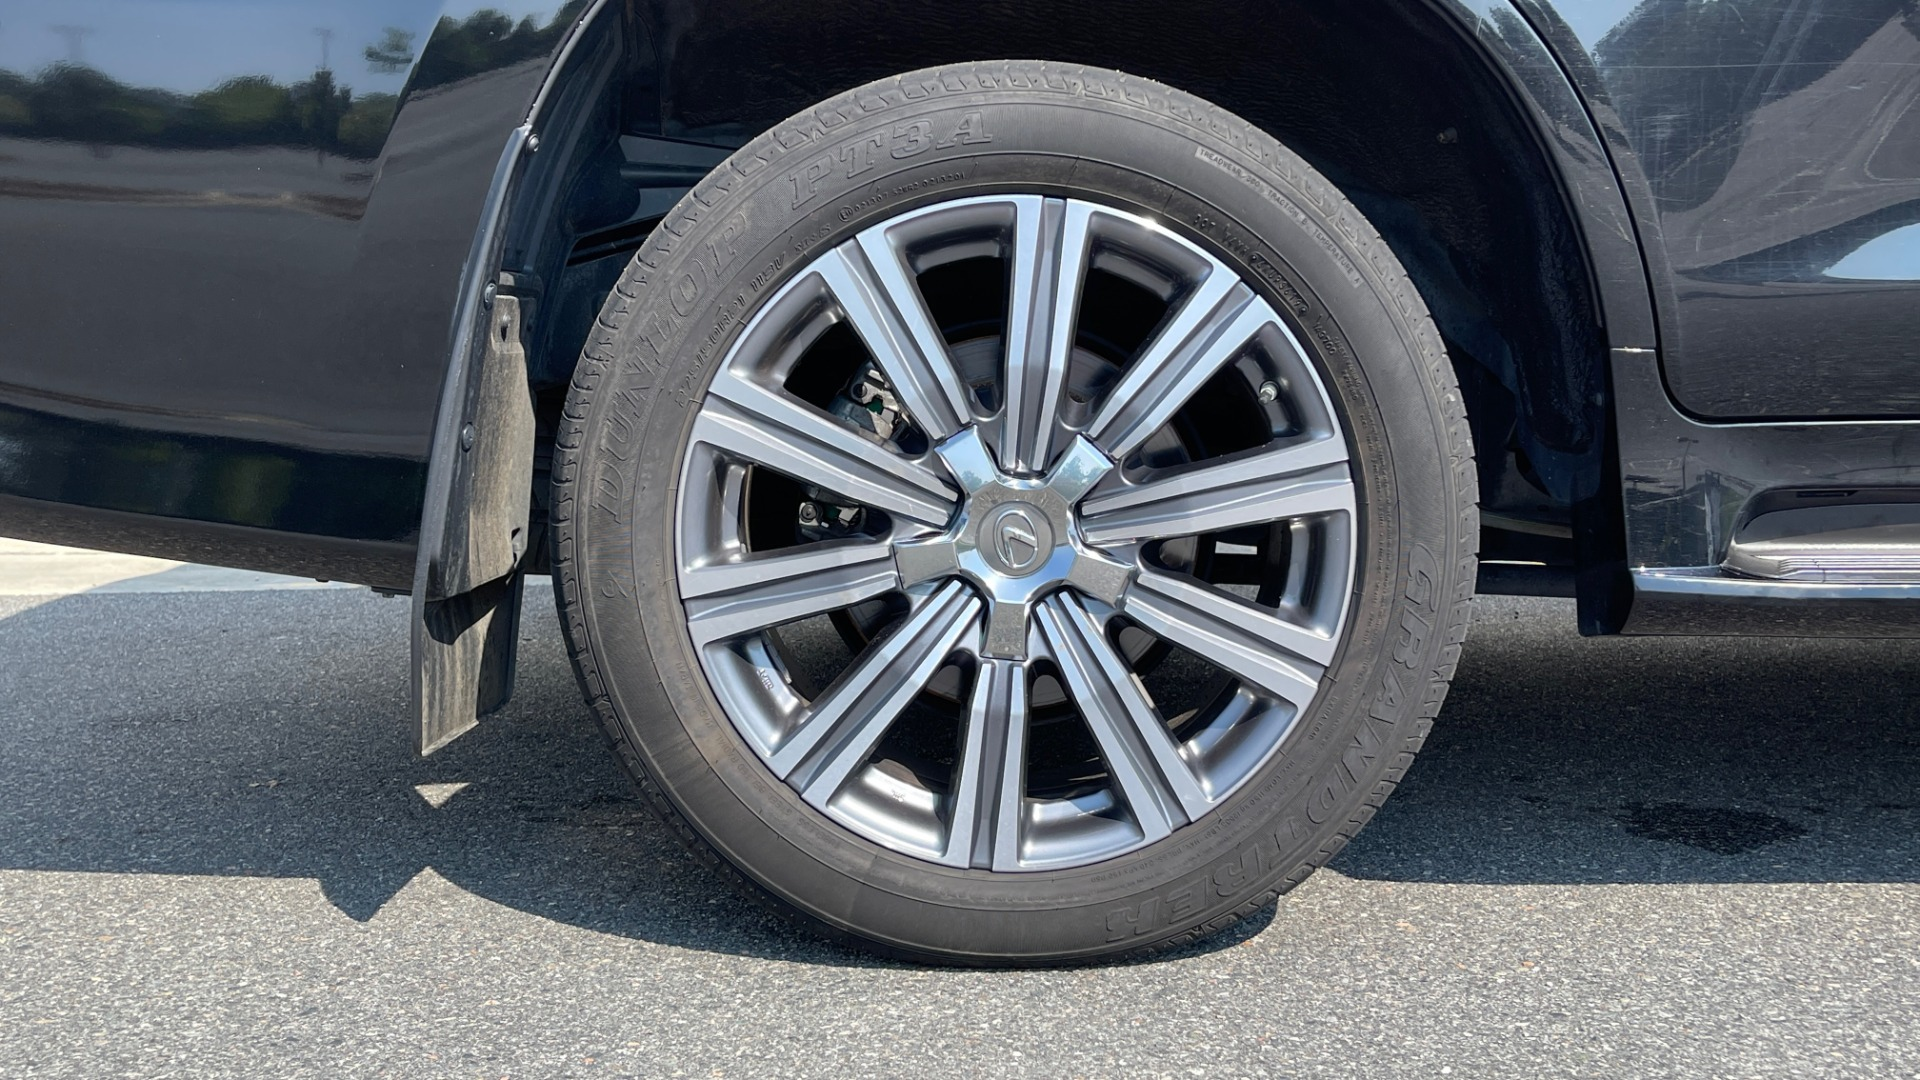 Used 2017 Lexus LX 570 LUXURY / 5.7L V8 / NAV / SUNROOF / 3-ROW / DVD / REARVIEW for sale $63,995 at Formula Imports in Charlotte NC 28227 77